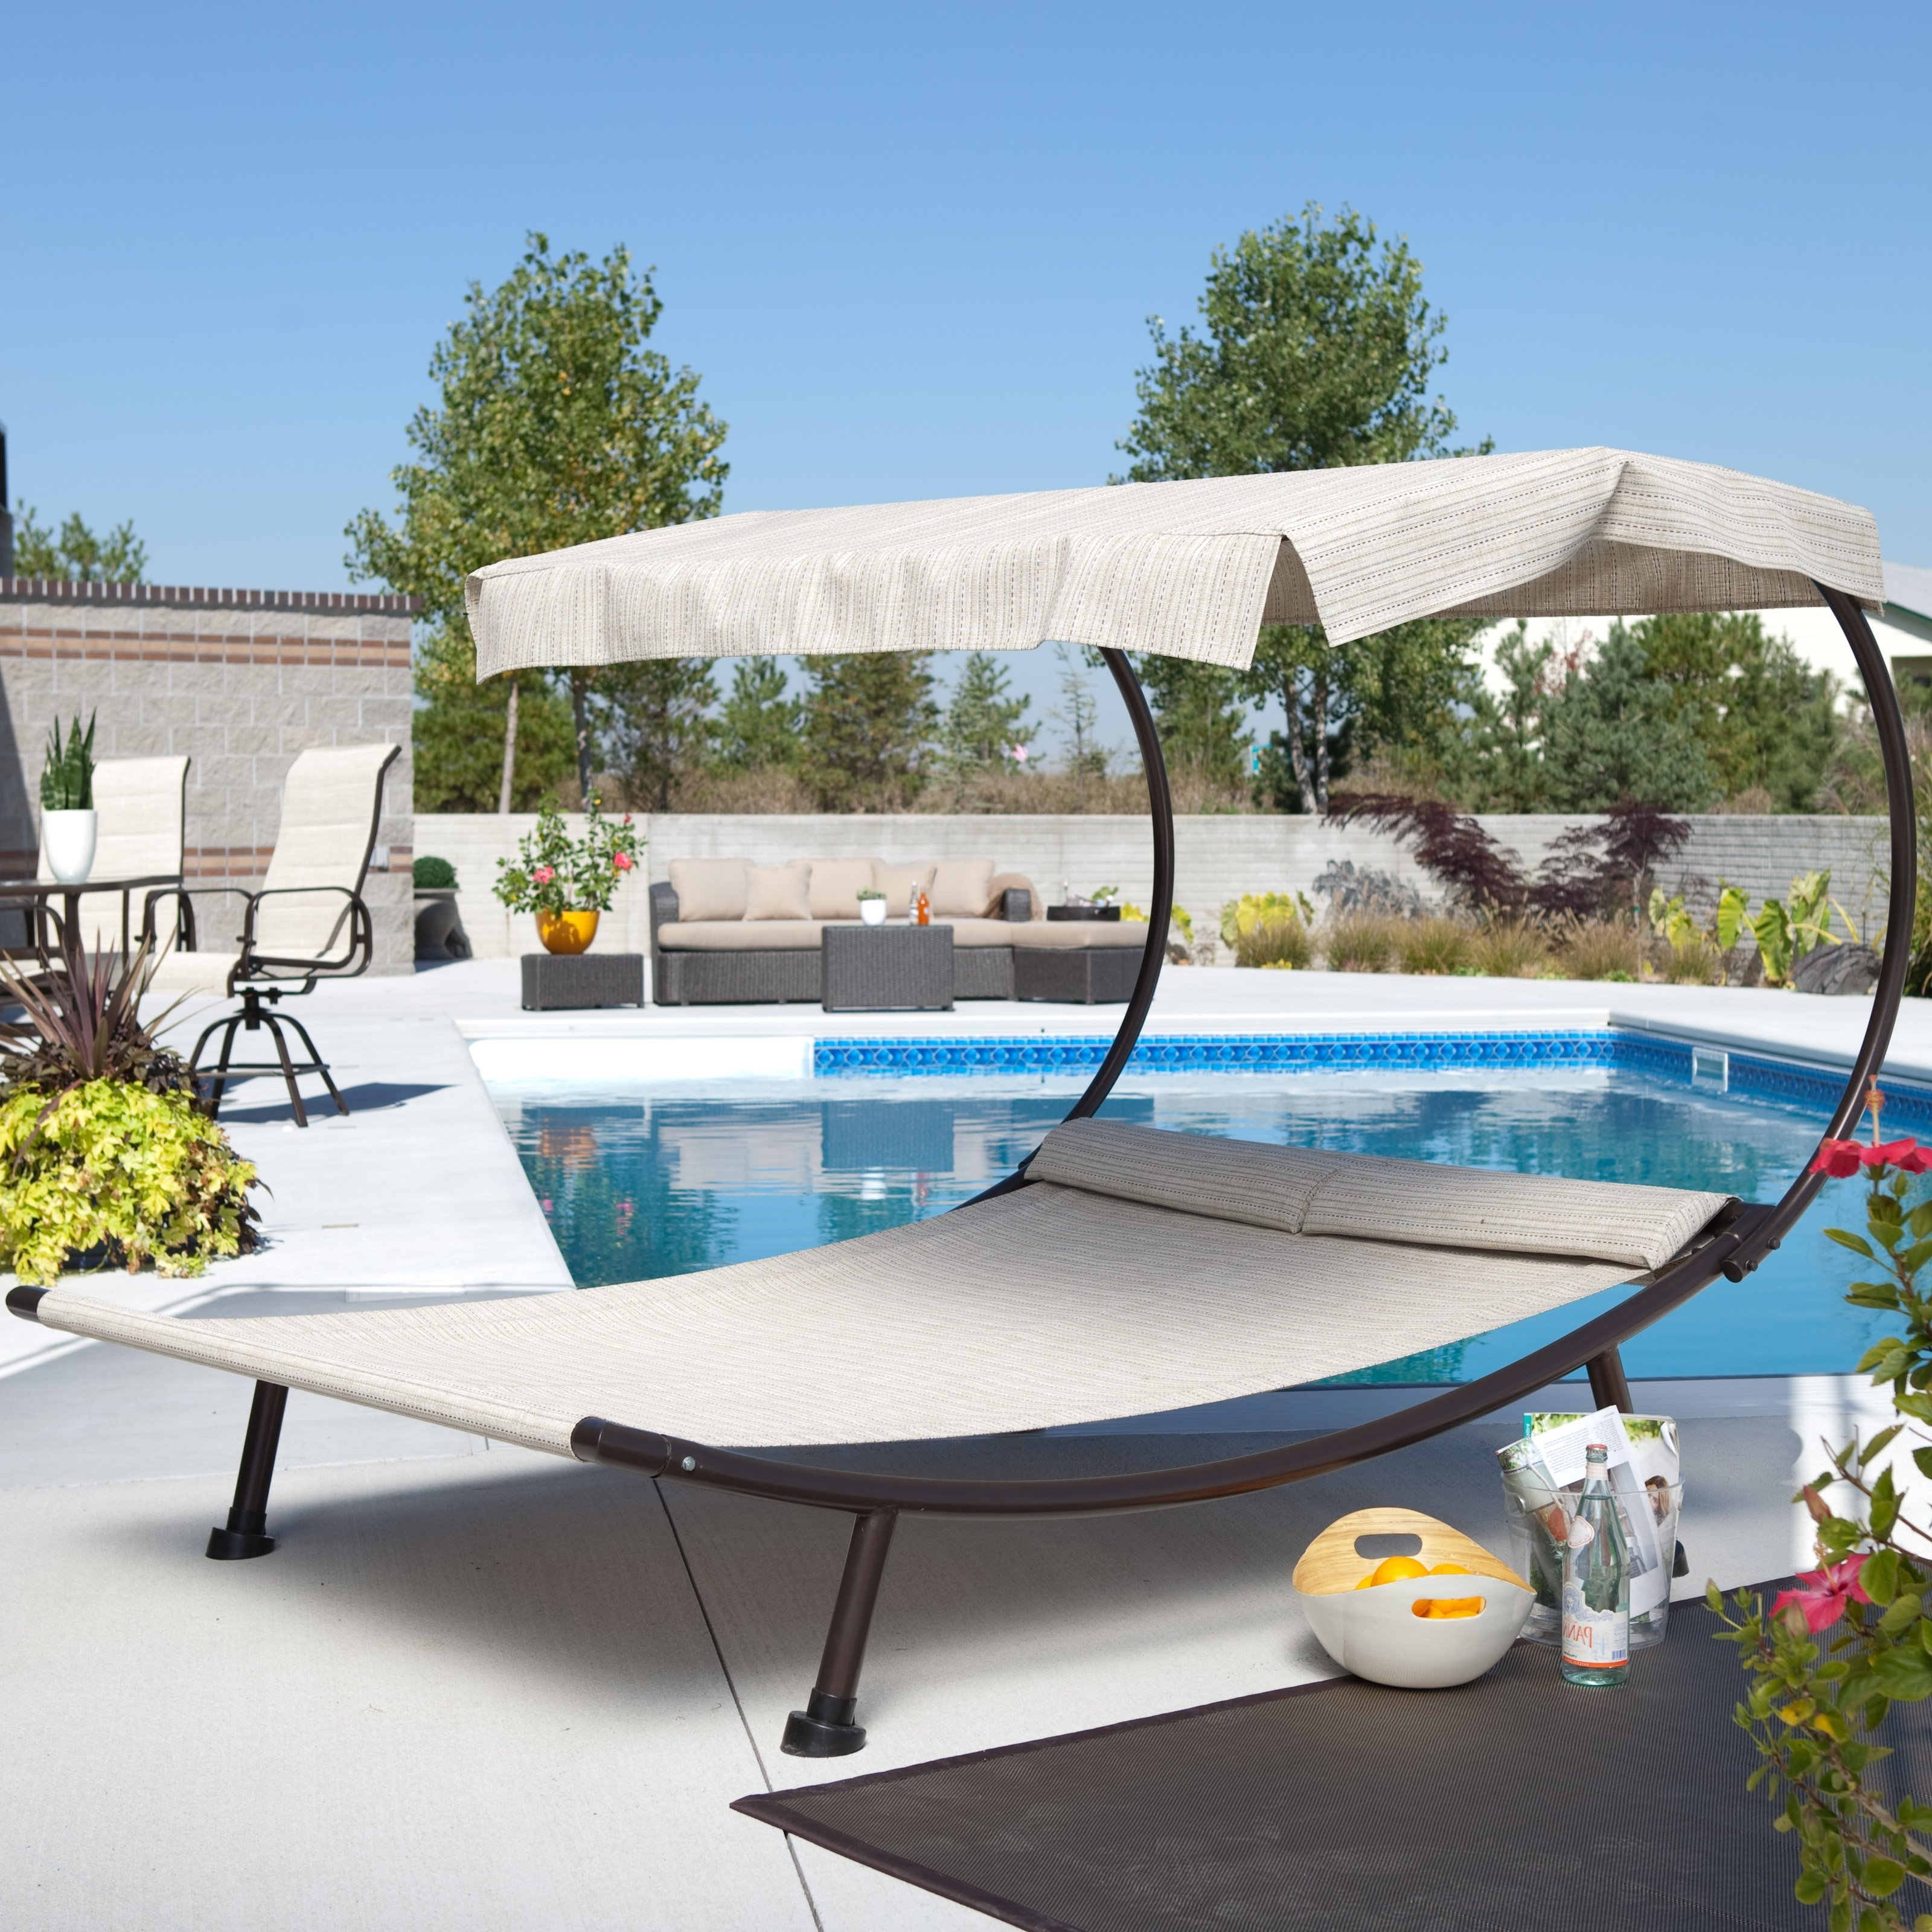 Hayneedle Throughout Latest Patio Double Chaise Lounges (View 11 of 15)